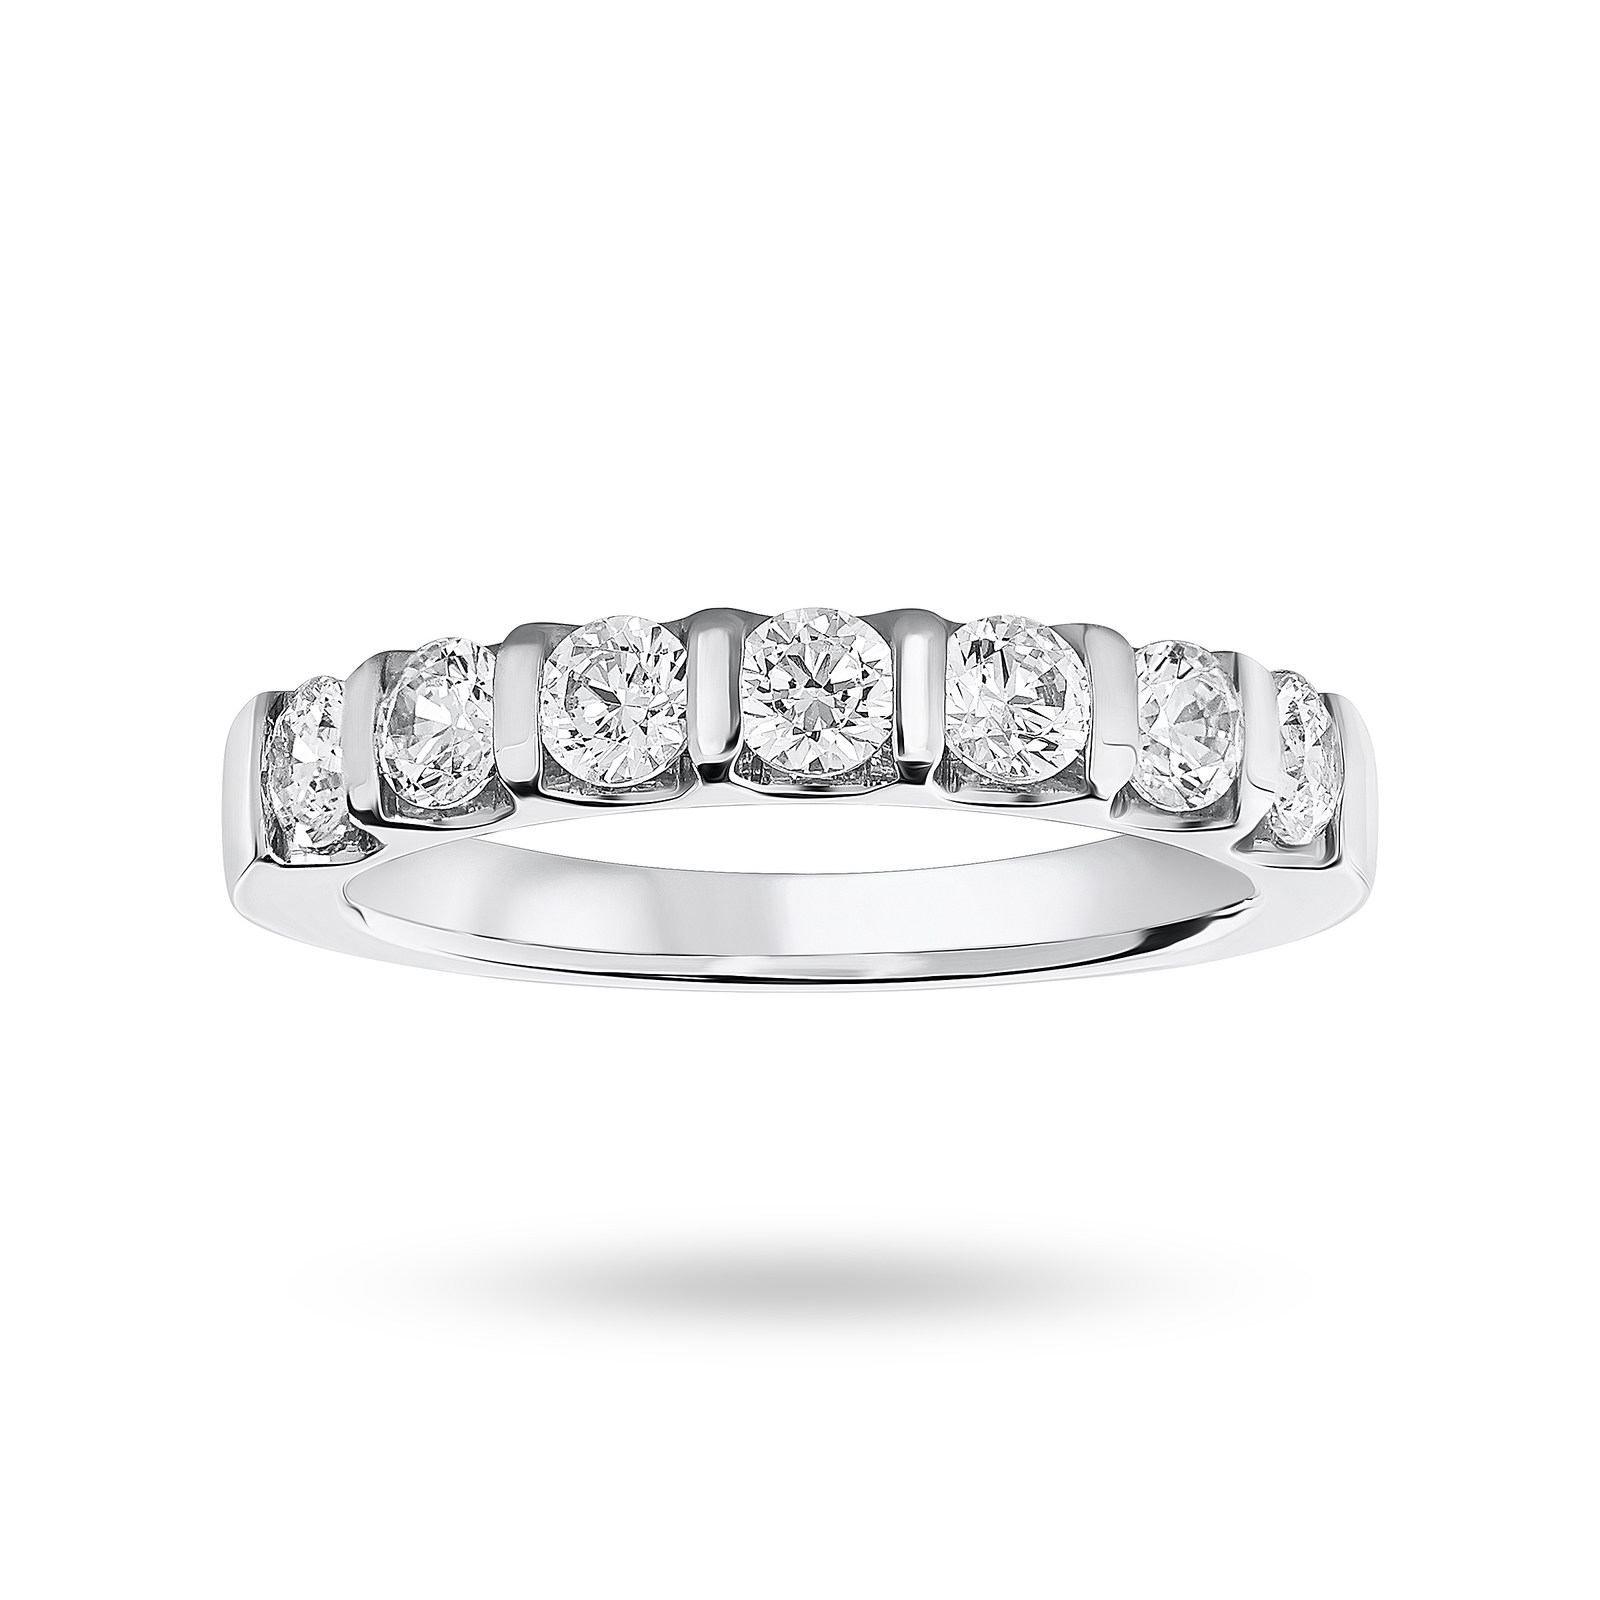 18 Carat White Gold 0.77 Carat Brilliant Cut Bar Half Eternity Ring